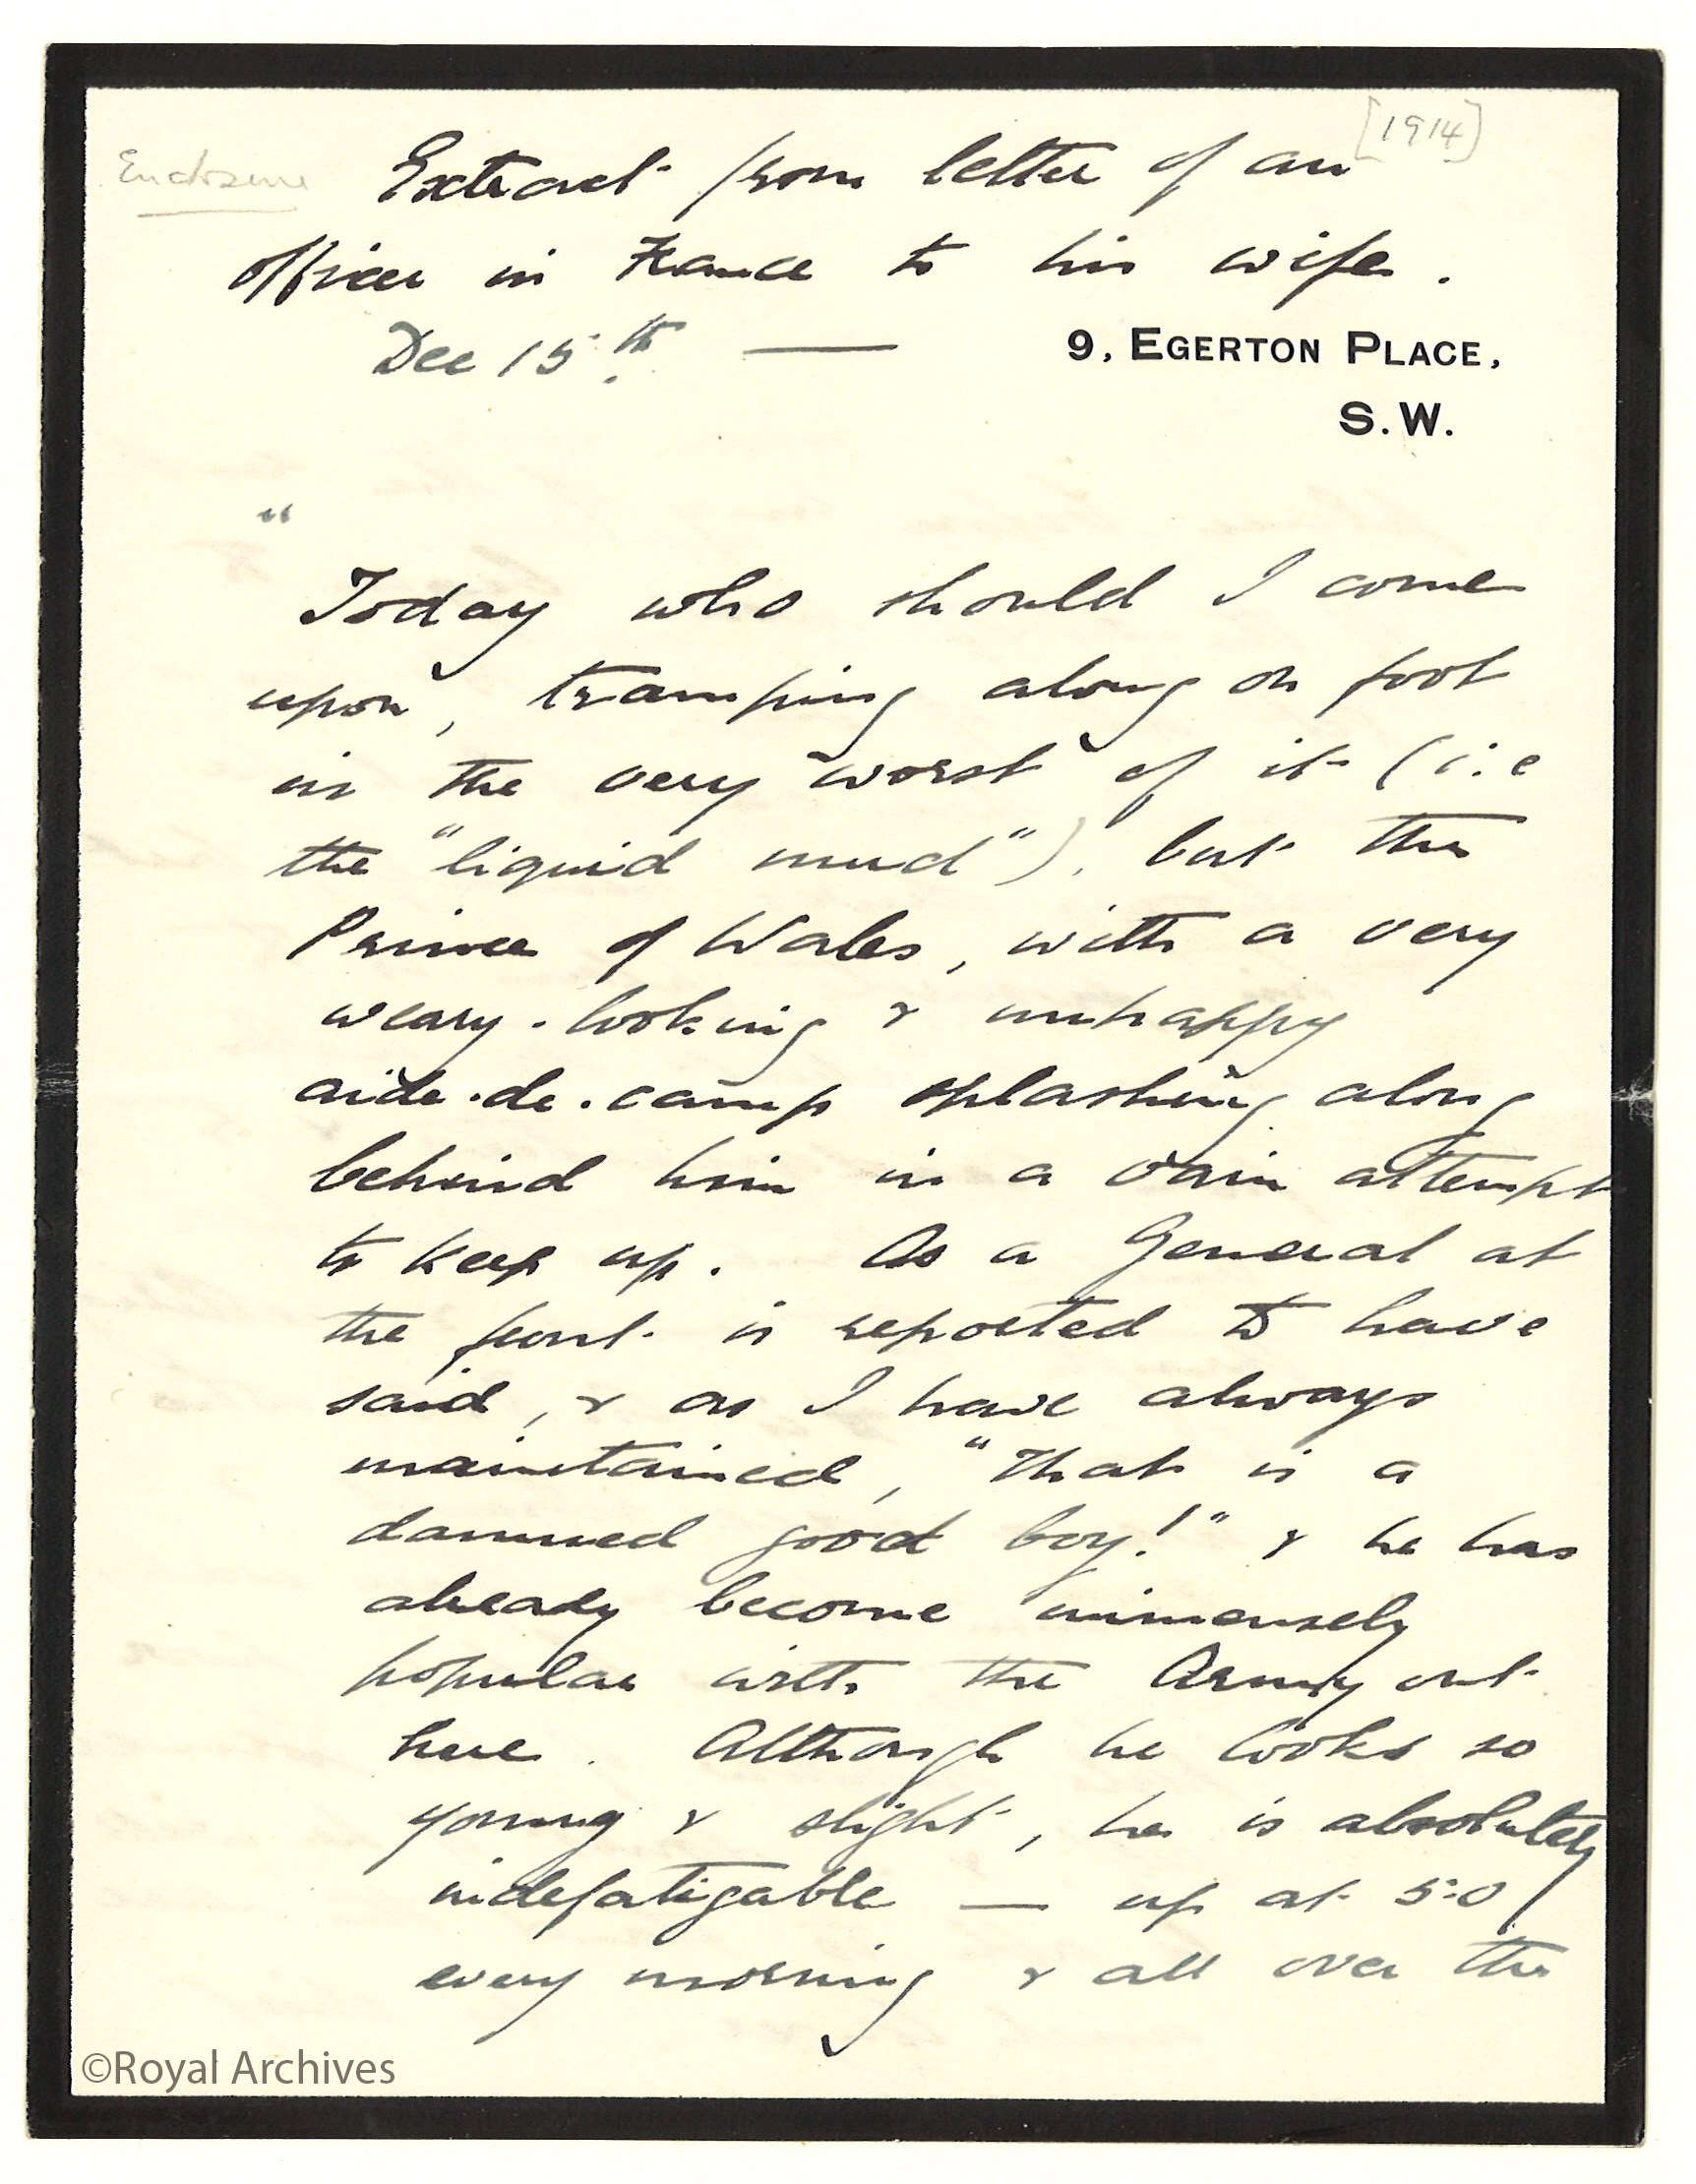 A letter about Edward, Prince of Wales